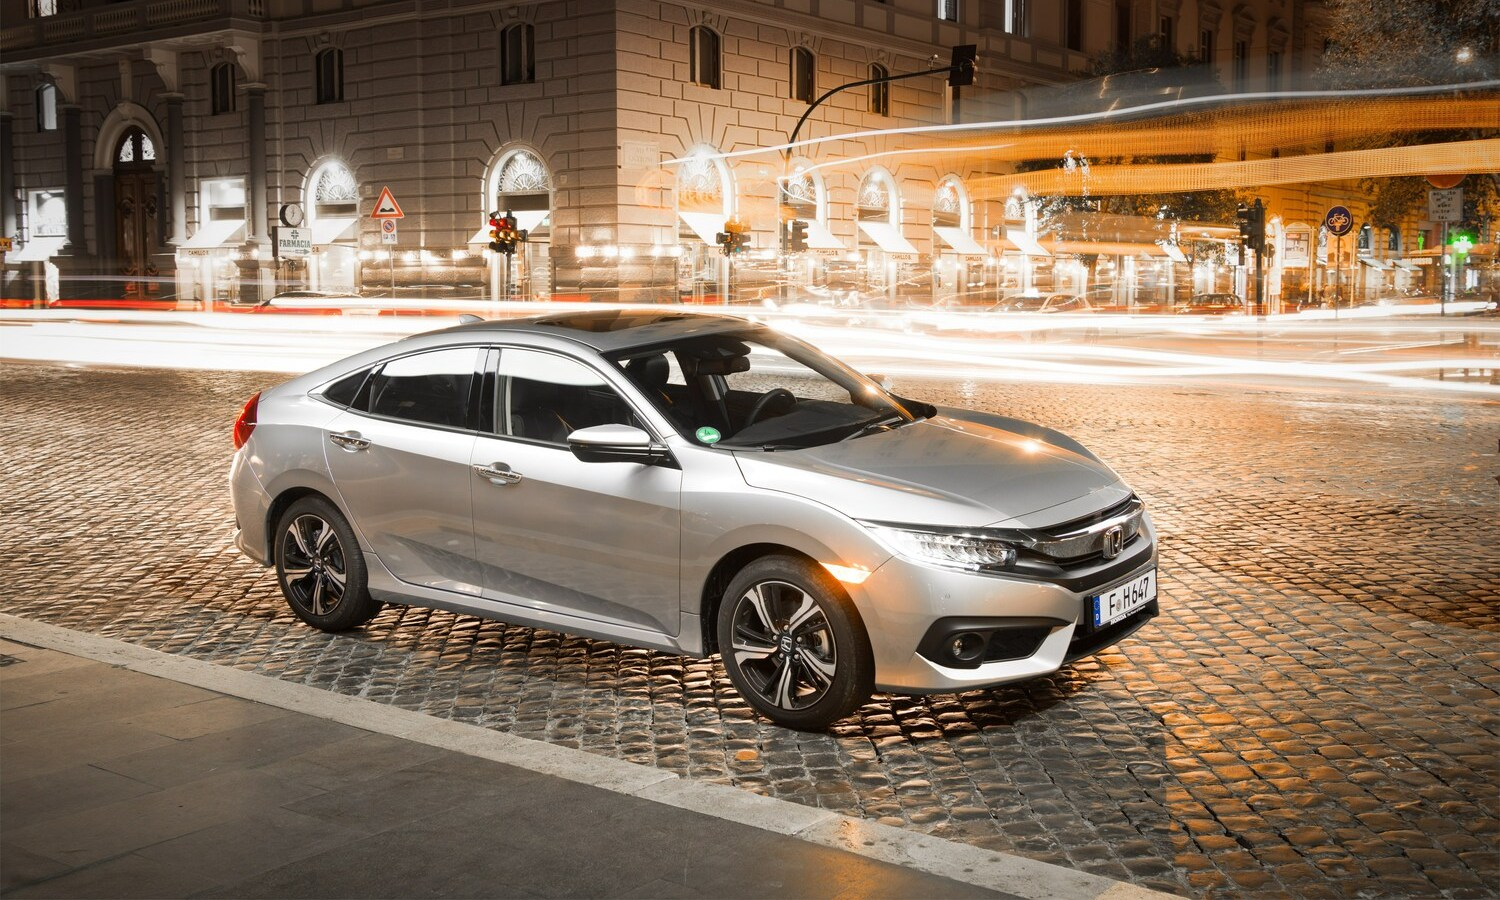 Honda Civic Sedán 1.6 i-DTEC front-side 2018